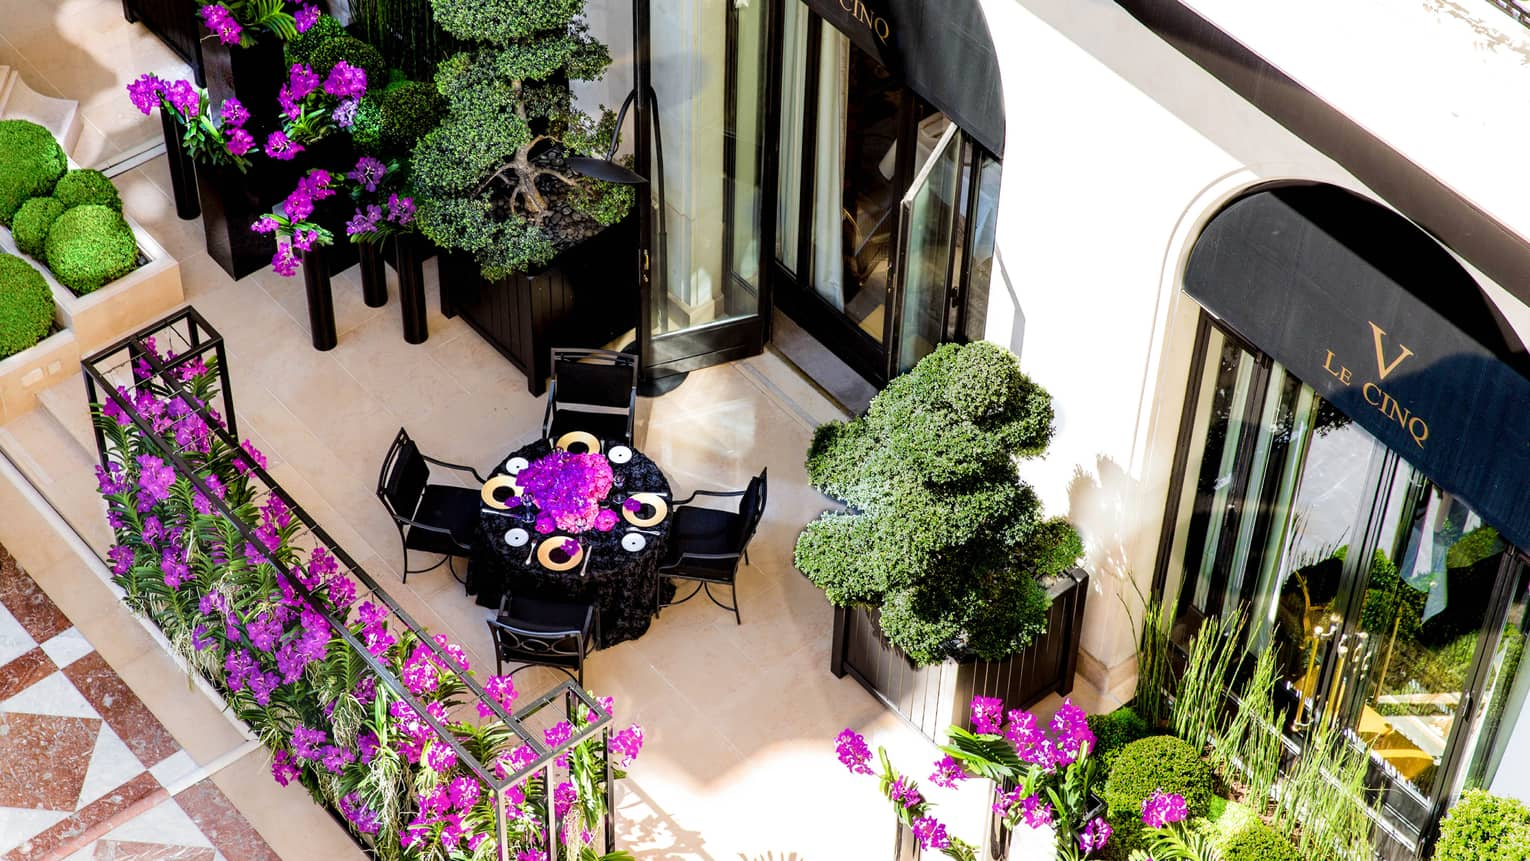 Aerial view of dining table on street-side patio, purple flowers, shrubs